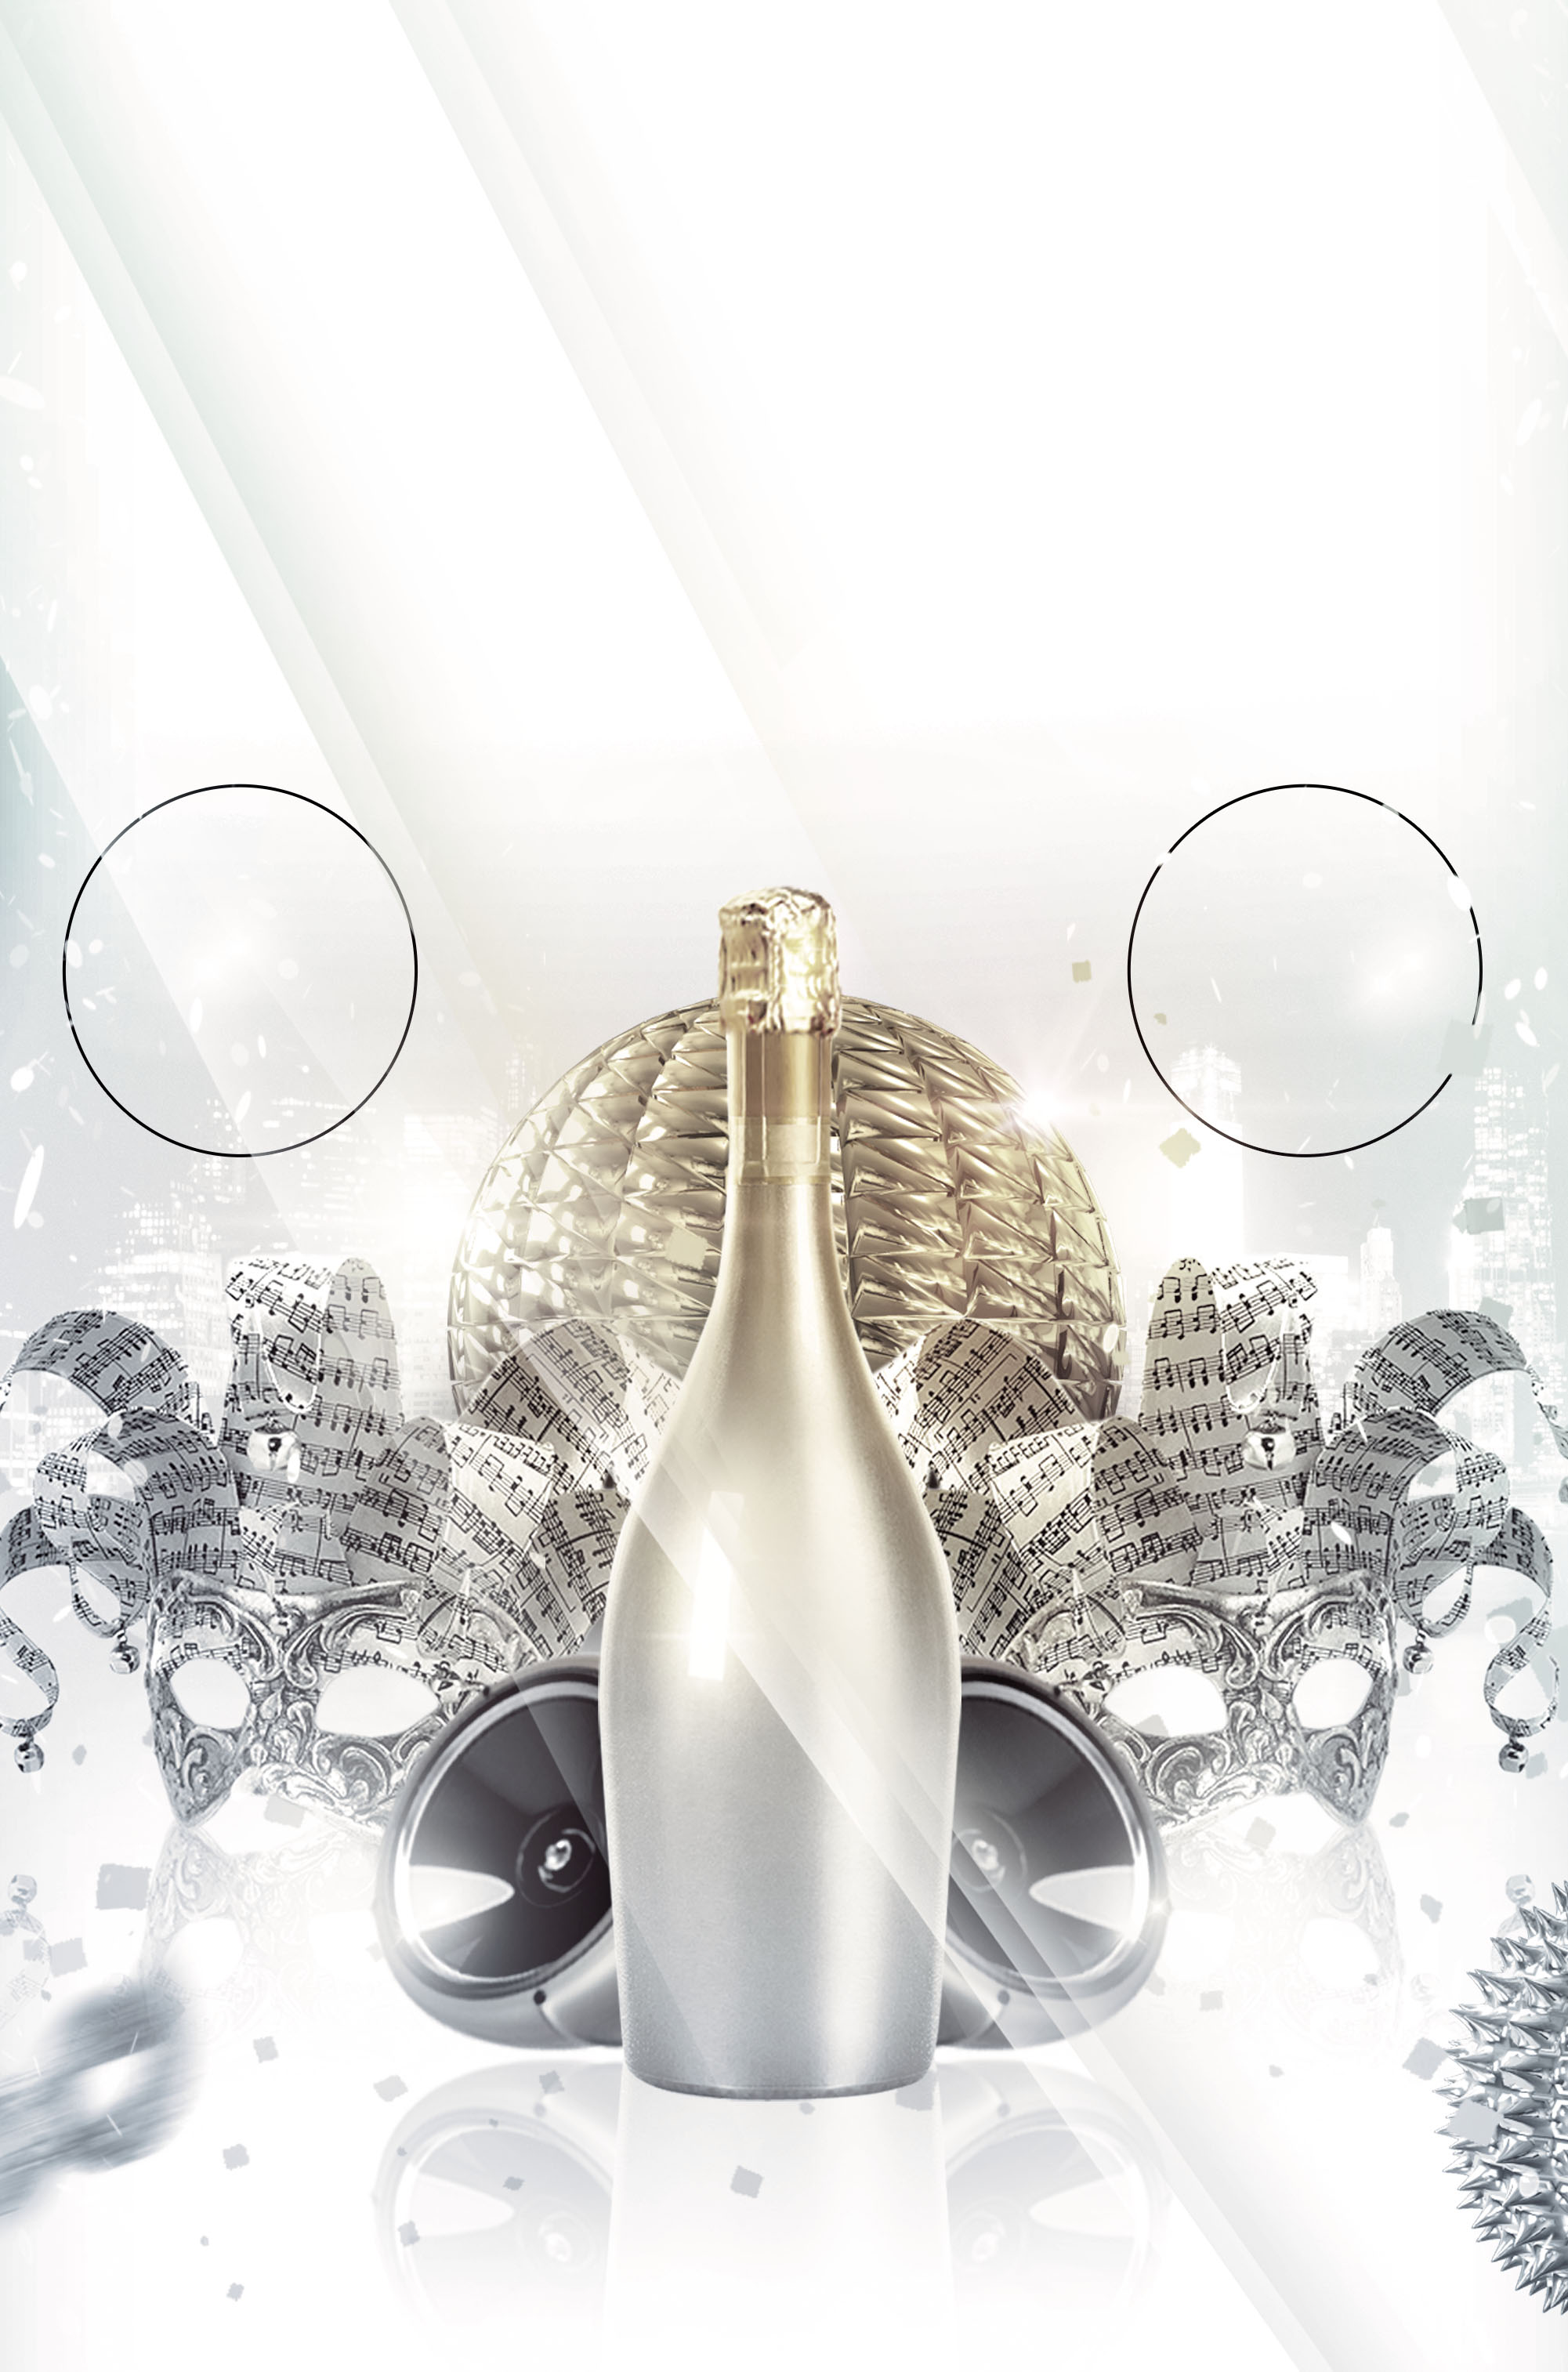 champagne passion poster background  champagne  passionate  cocktail background image for free